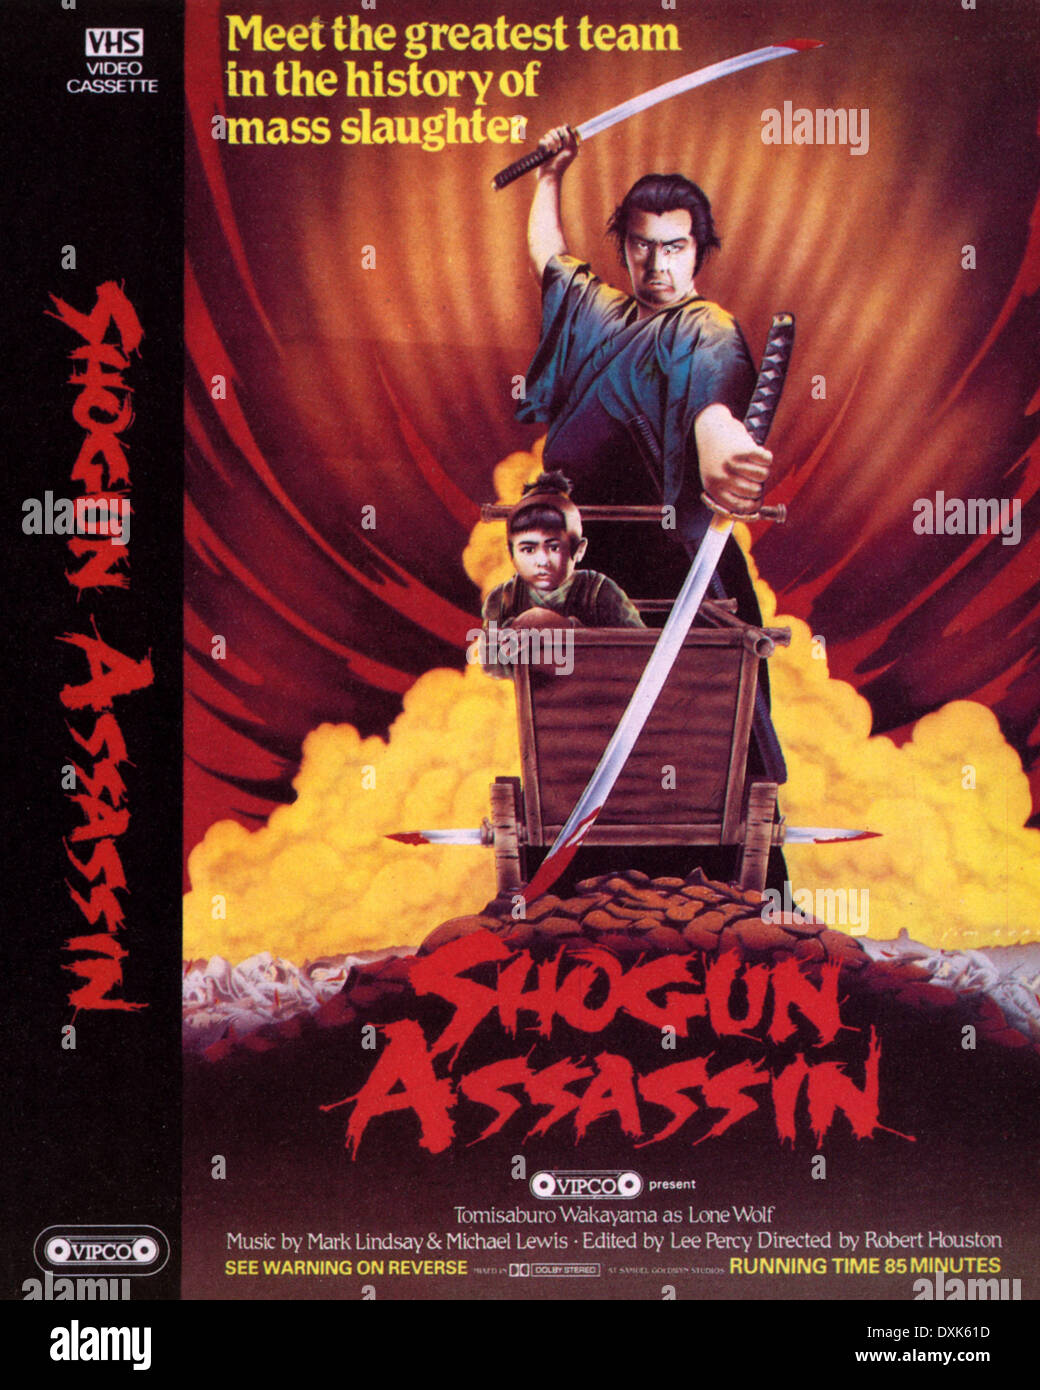 SHOGUN ASSASSIN (1980) PICTURE FROM THE RONALD GRANT ARCHIVE - Stock Image